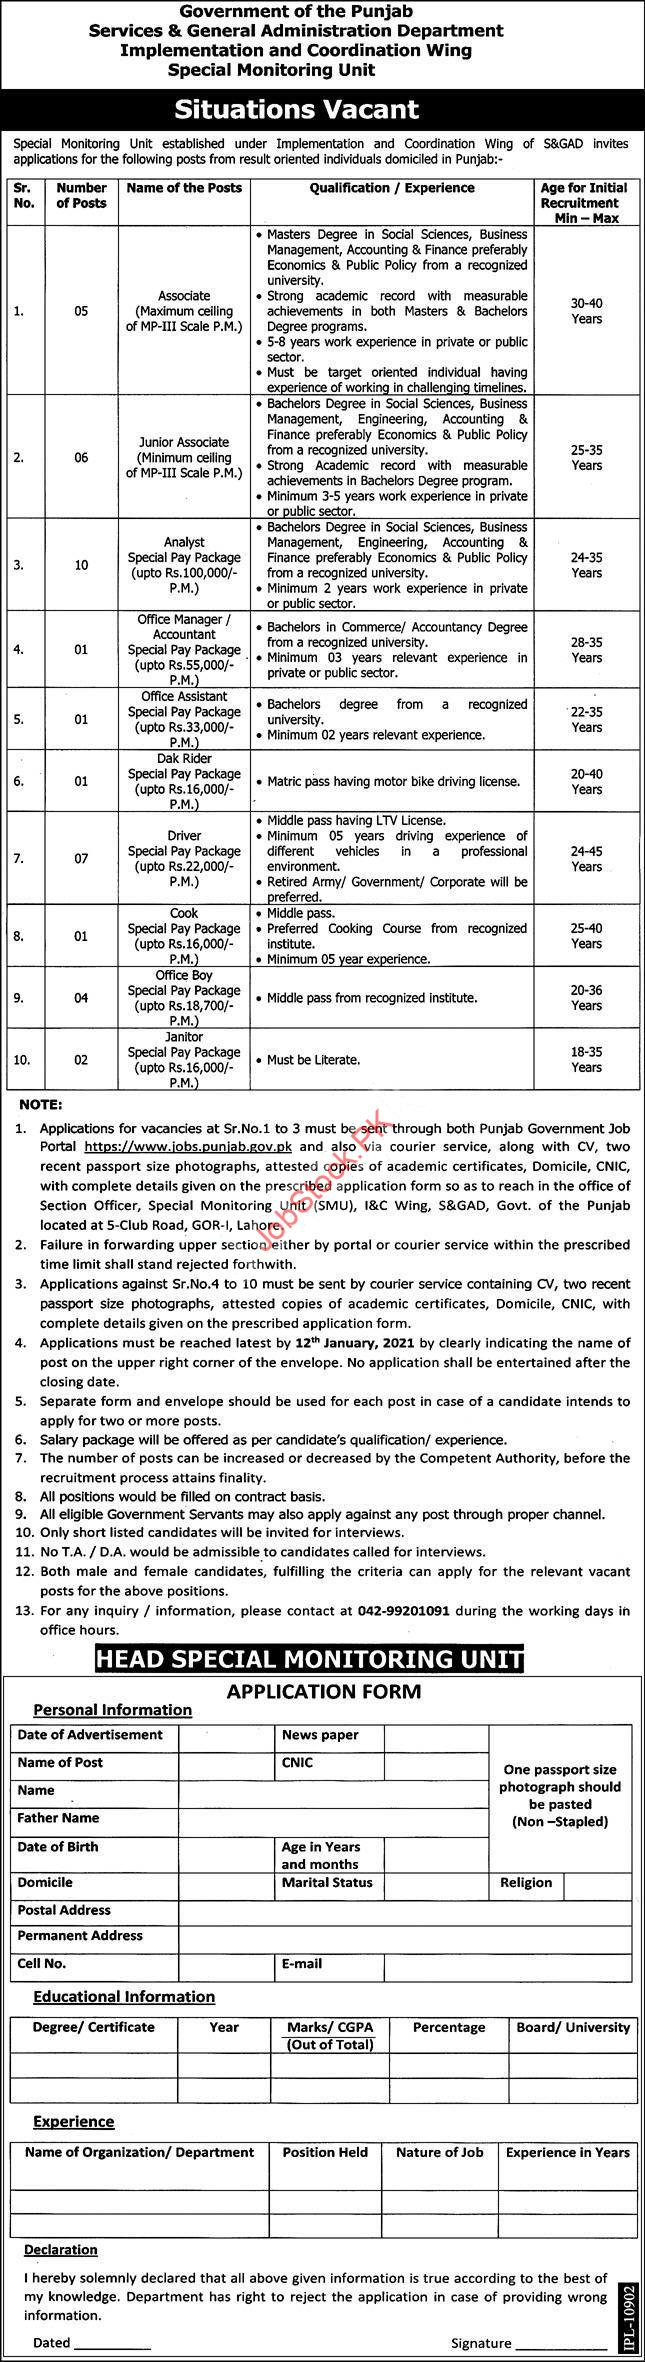 Services & General Administration Department Smu Jobs 2021